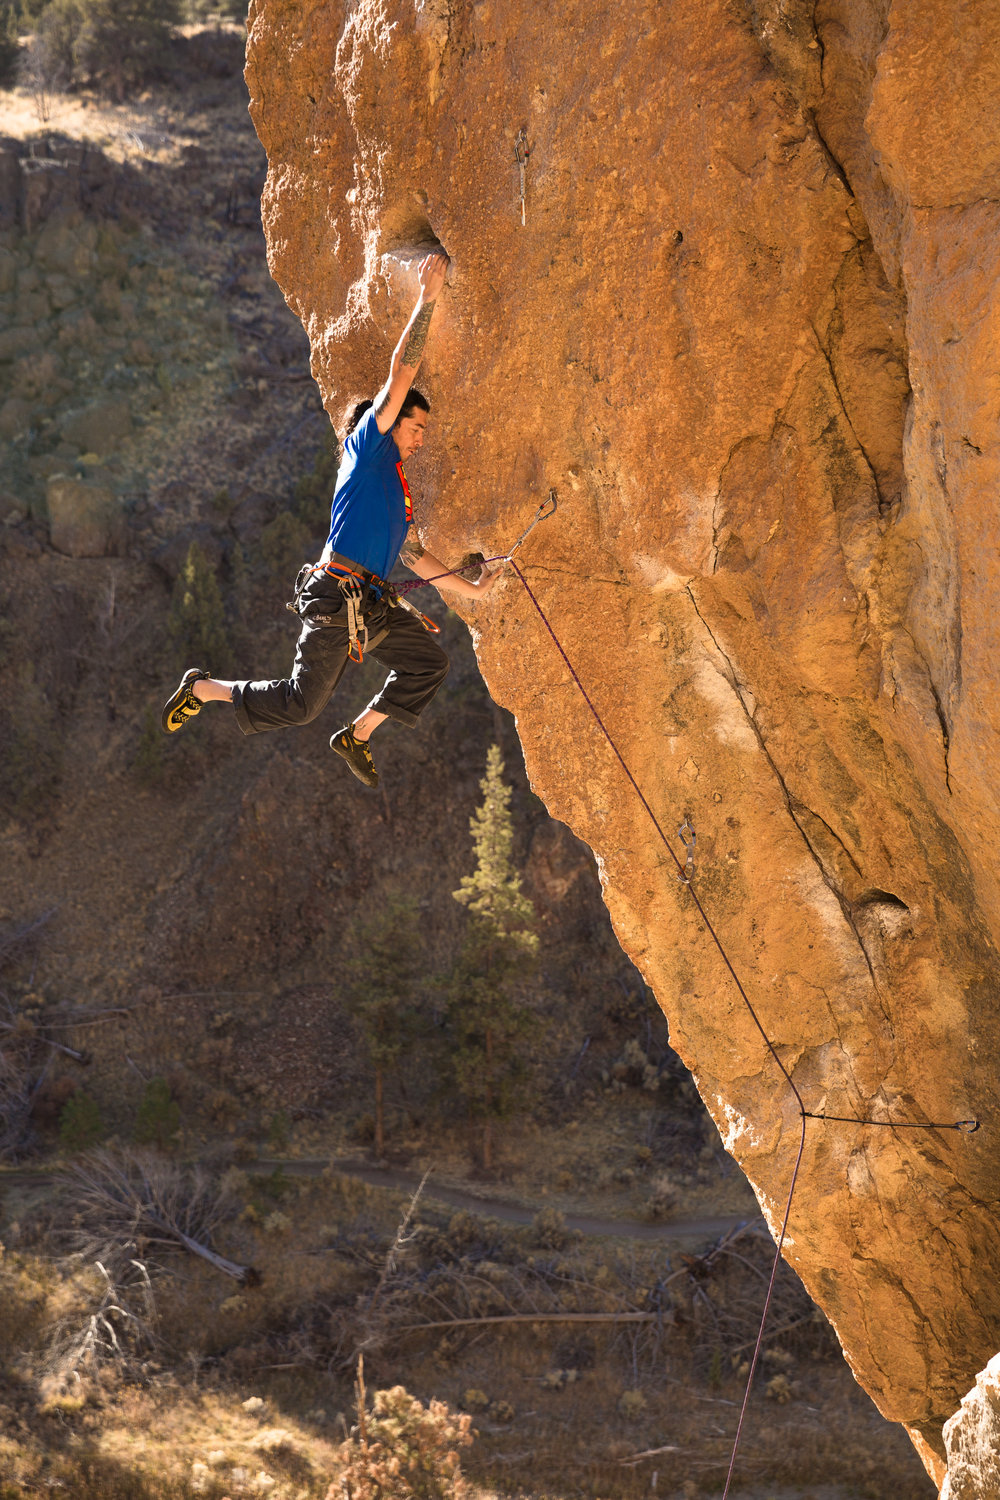 Juan Rodriguez on Toxic, Smith Rock. Photo by Nicole Wasko, @nicole_wasko